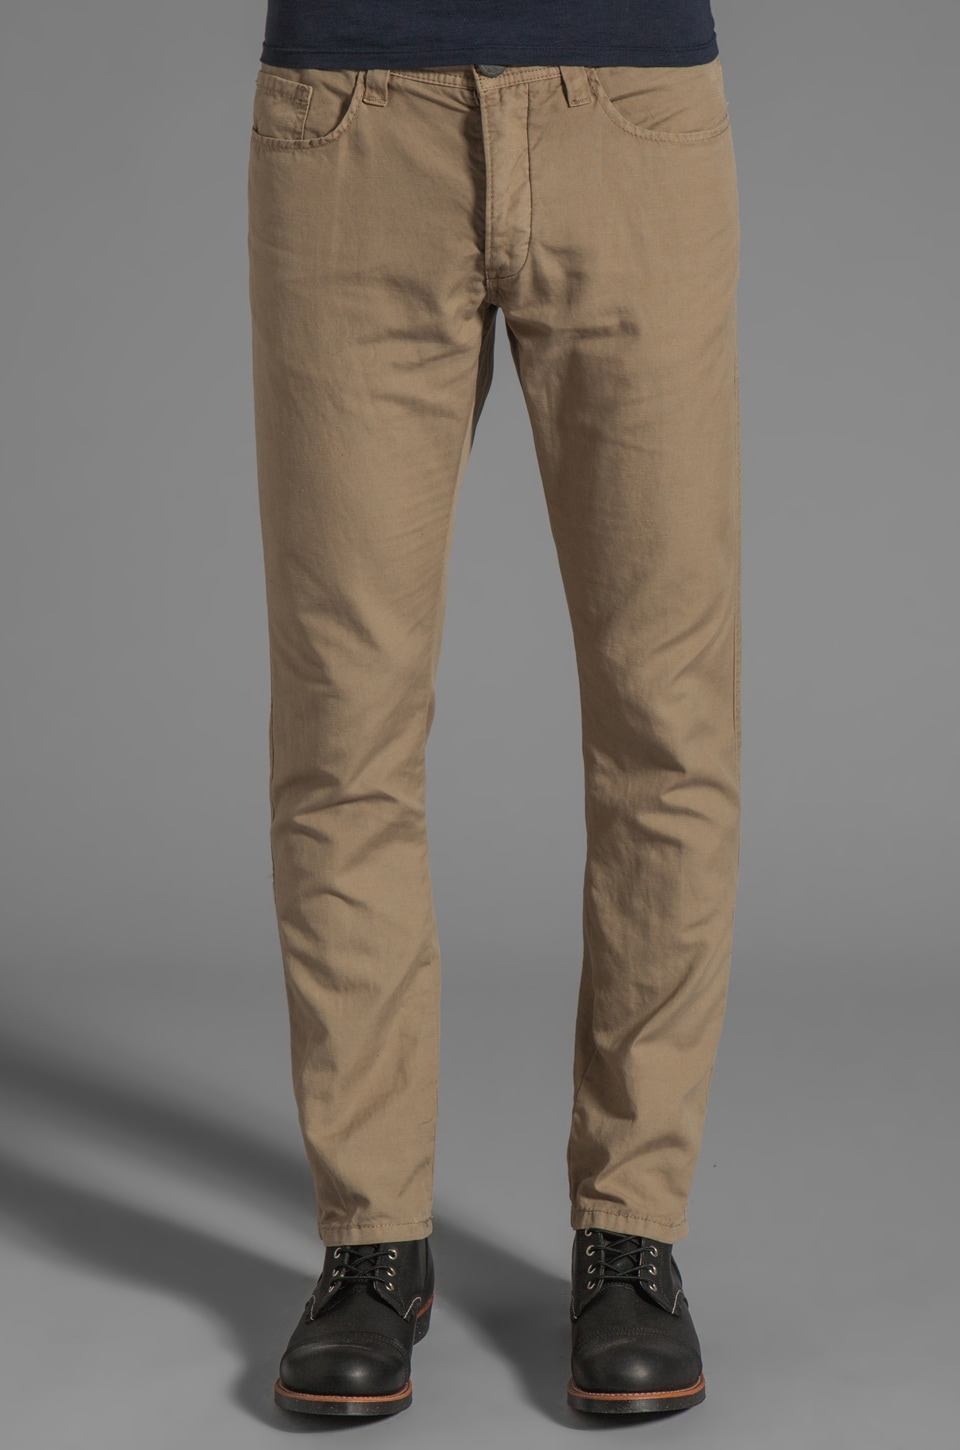 Howe Cali Kool Cotton Linen Pants in Desert Post